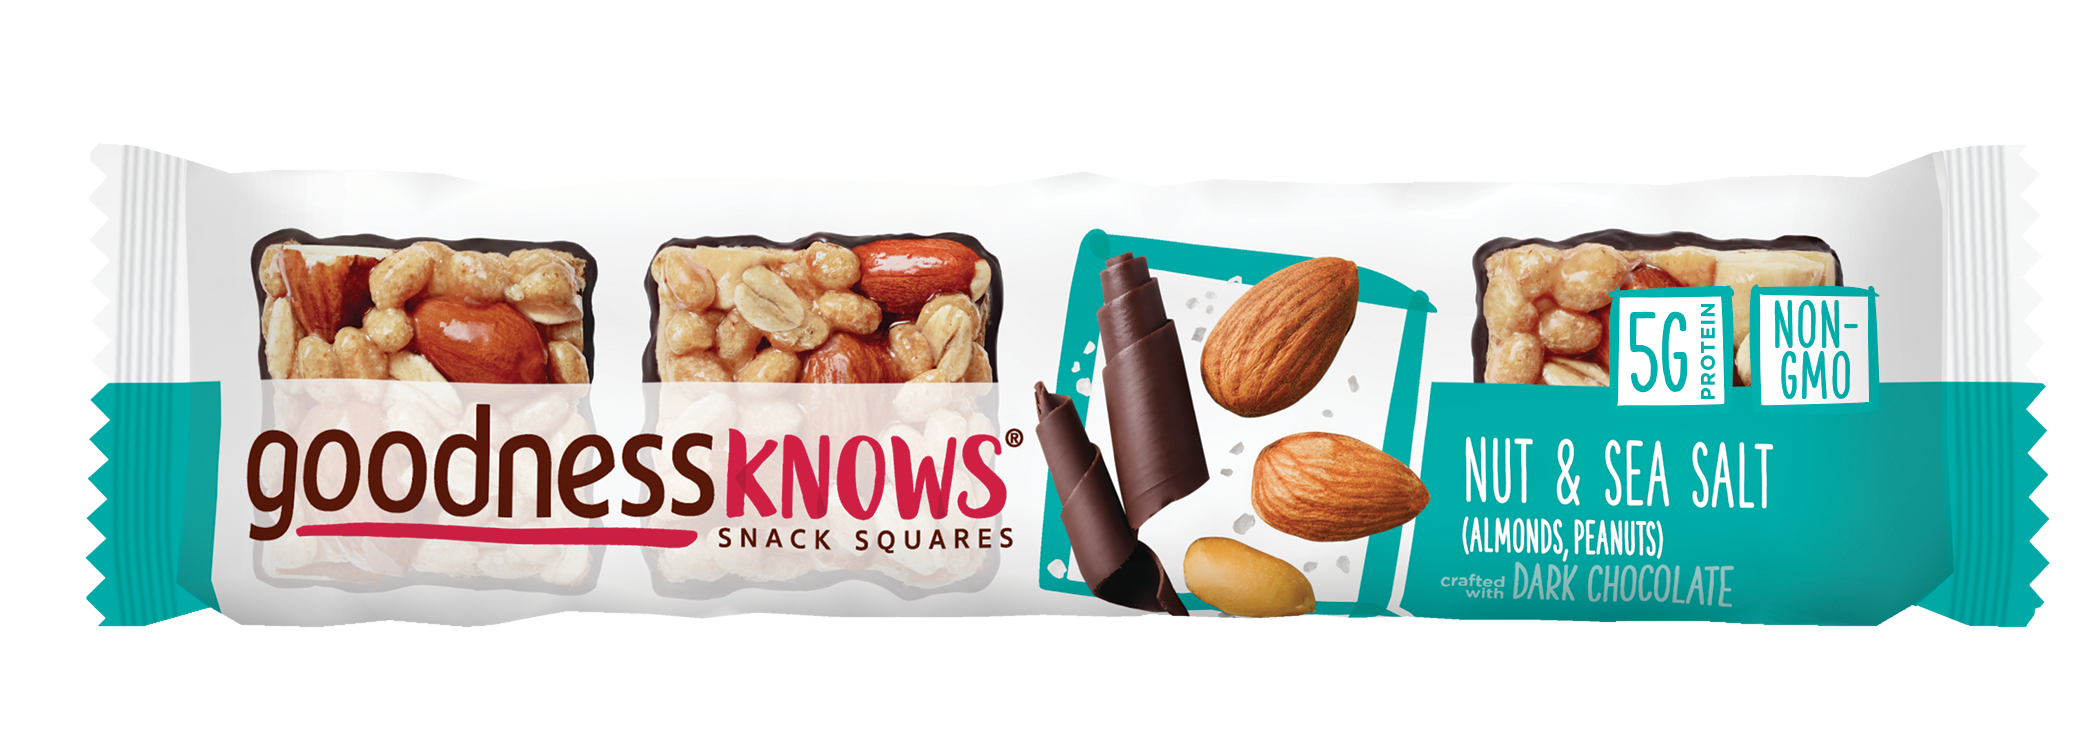 Goodnessknows snack squares mars. Peanuts clipart mixed nut